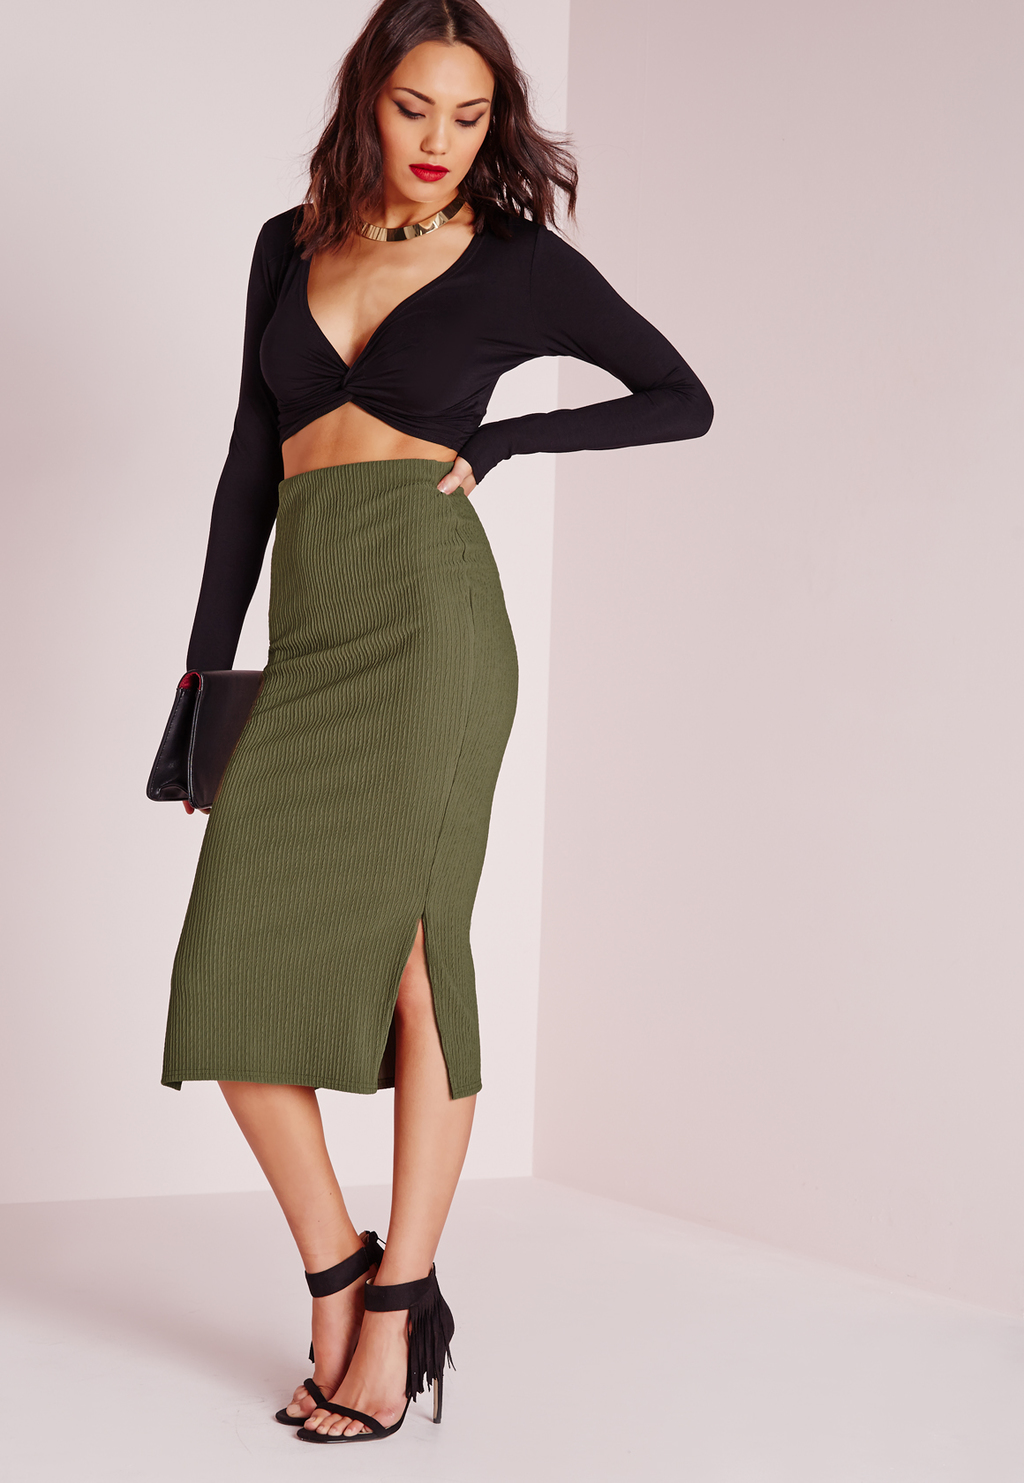 Textured Side Split Longline Midi Skirt Khaki, Beige - length: below the knee; pattern: plain; style: pencil; fit: tight; waist: high rise; hip detail: draws attention to hips; predominant colour: khaki; occasions: evening, creative work; fibres: polyester/polyamide - 100%; texture group: jersey - clingy; pattern type: fabric; season: s/s 2016; wardrobe: basic